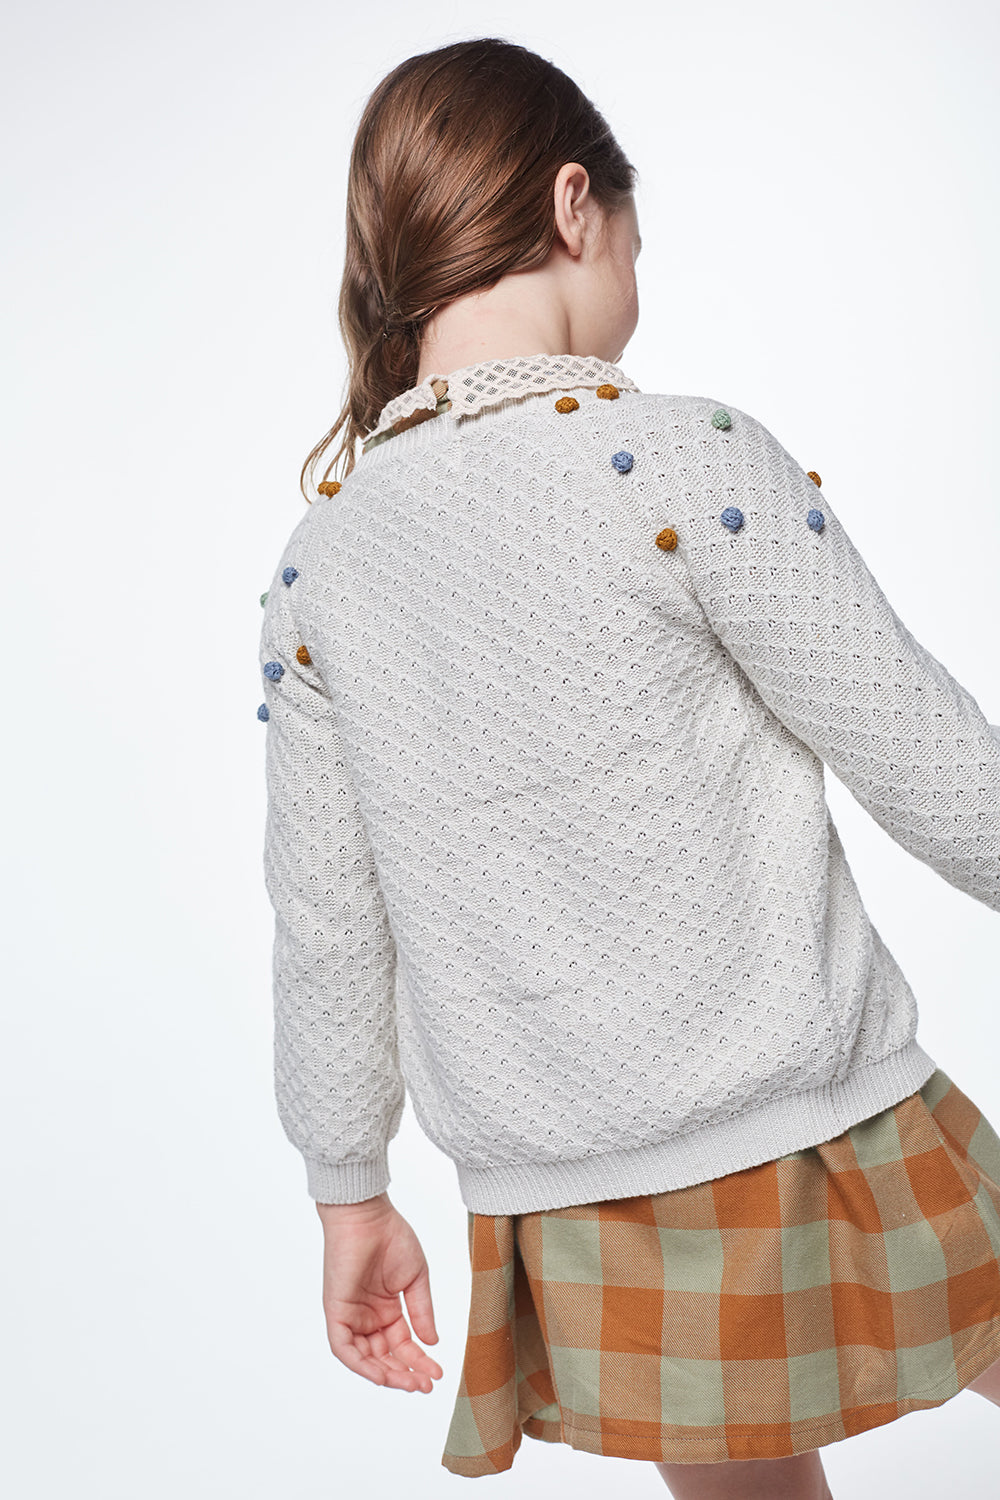 Load image into Gallery viewer, Coco Au Lait WHITE FANTASY CARDIGAN Sweater Off White